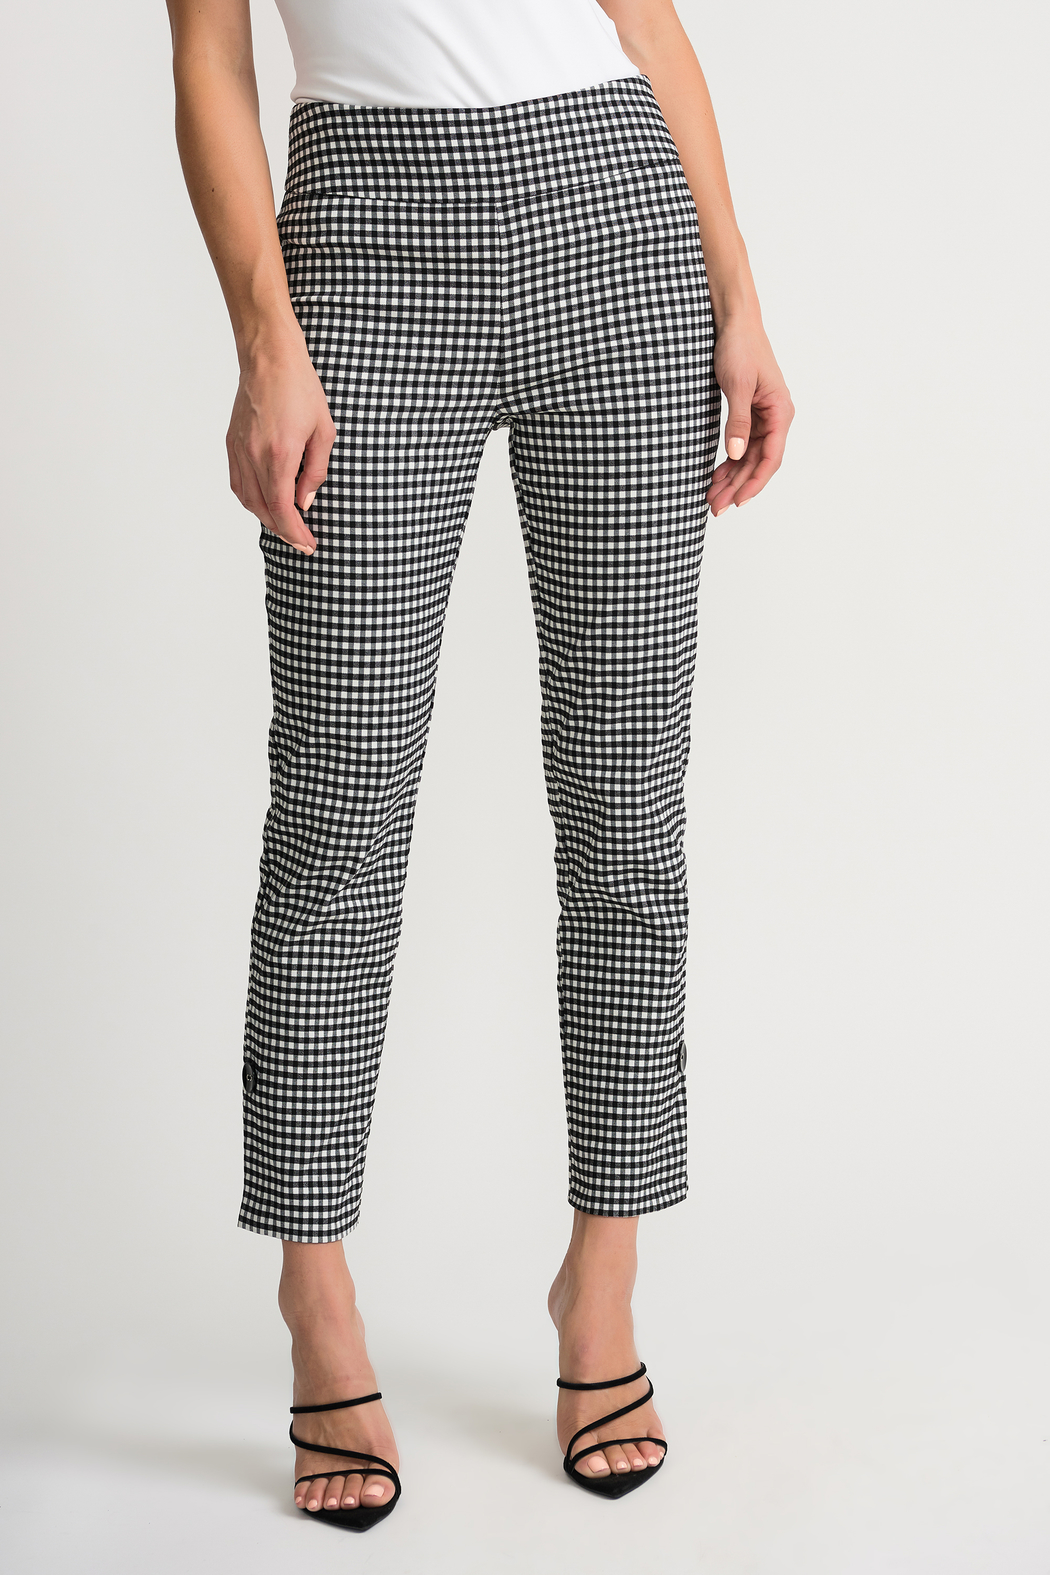 Joseph Ribkoff  Gingham Pants - Front Cropped Image